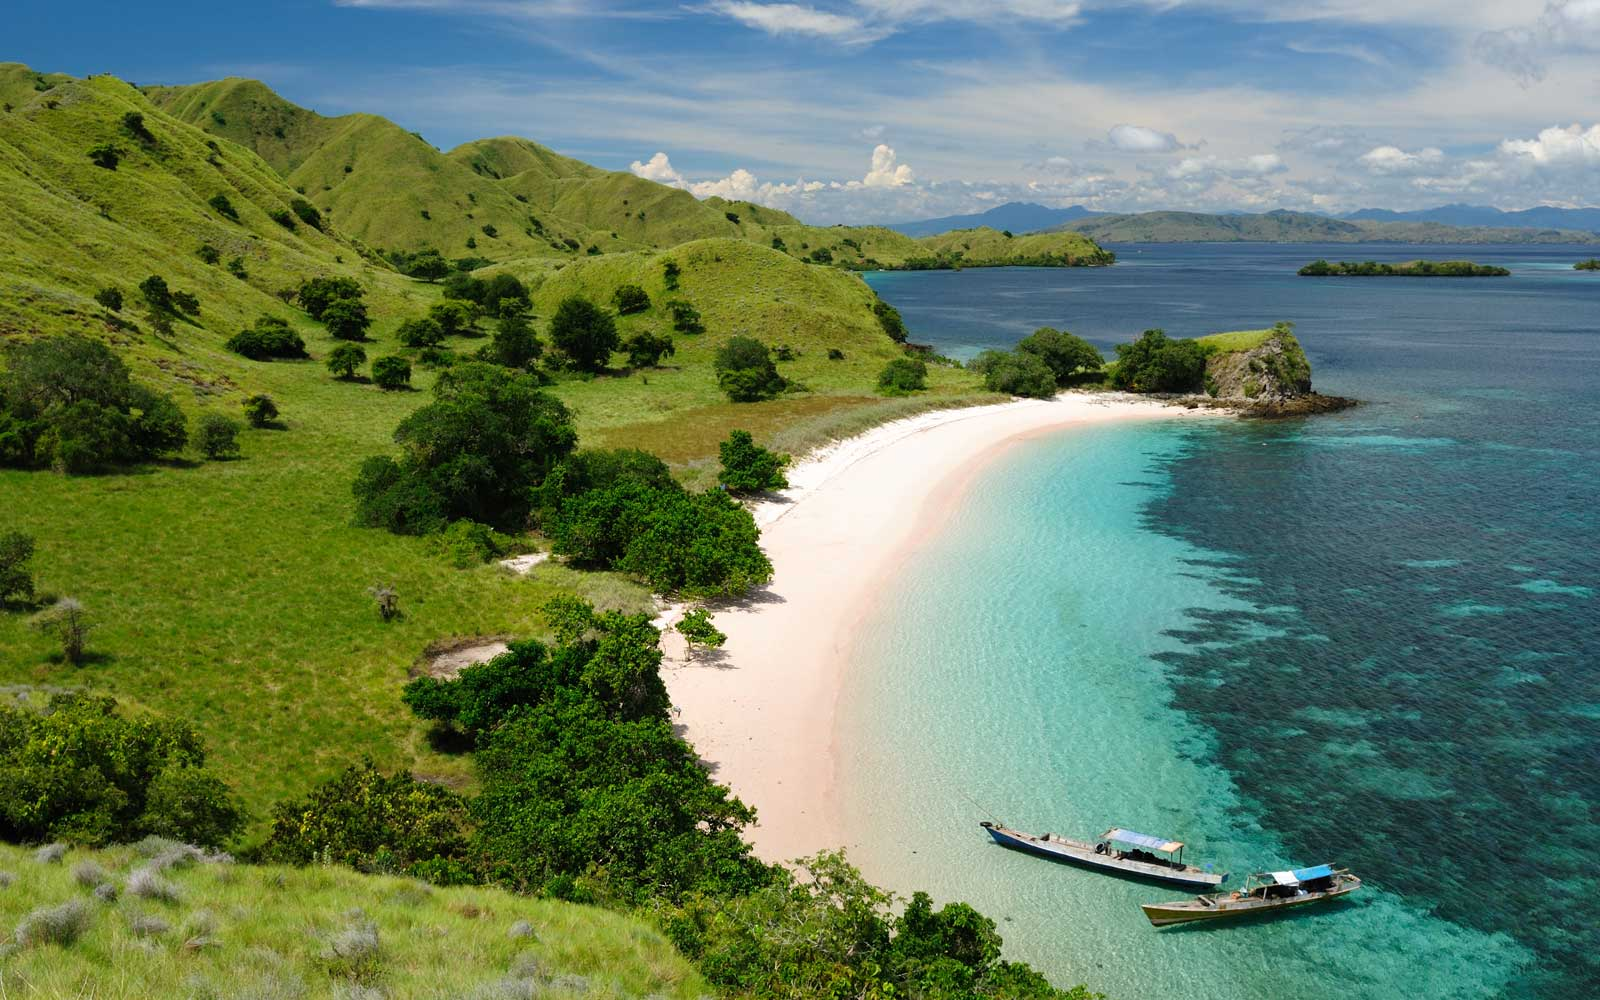 The Most Naturally Beautiful Countries in the World